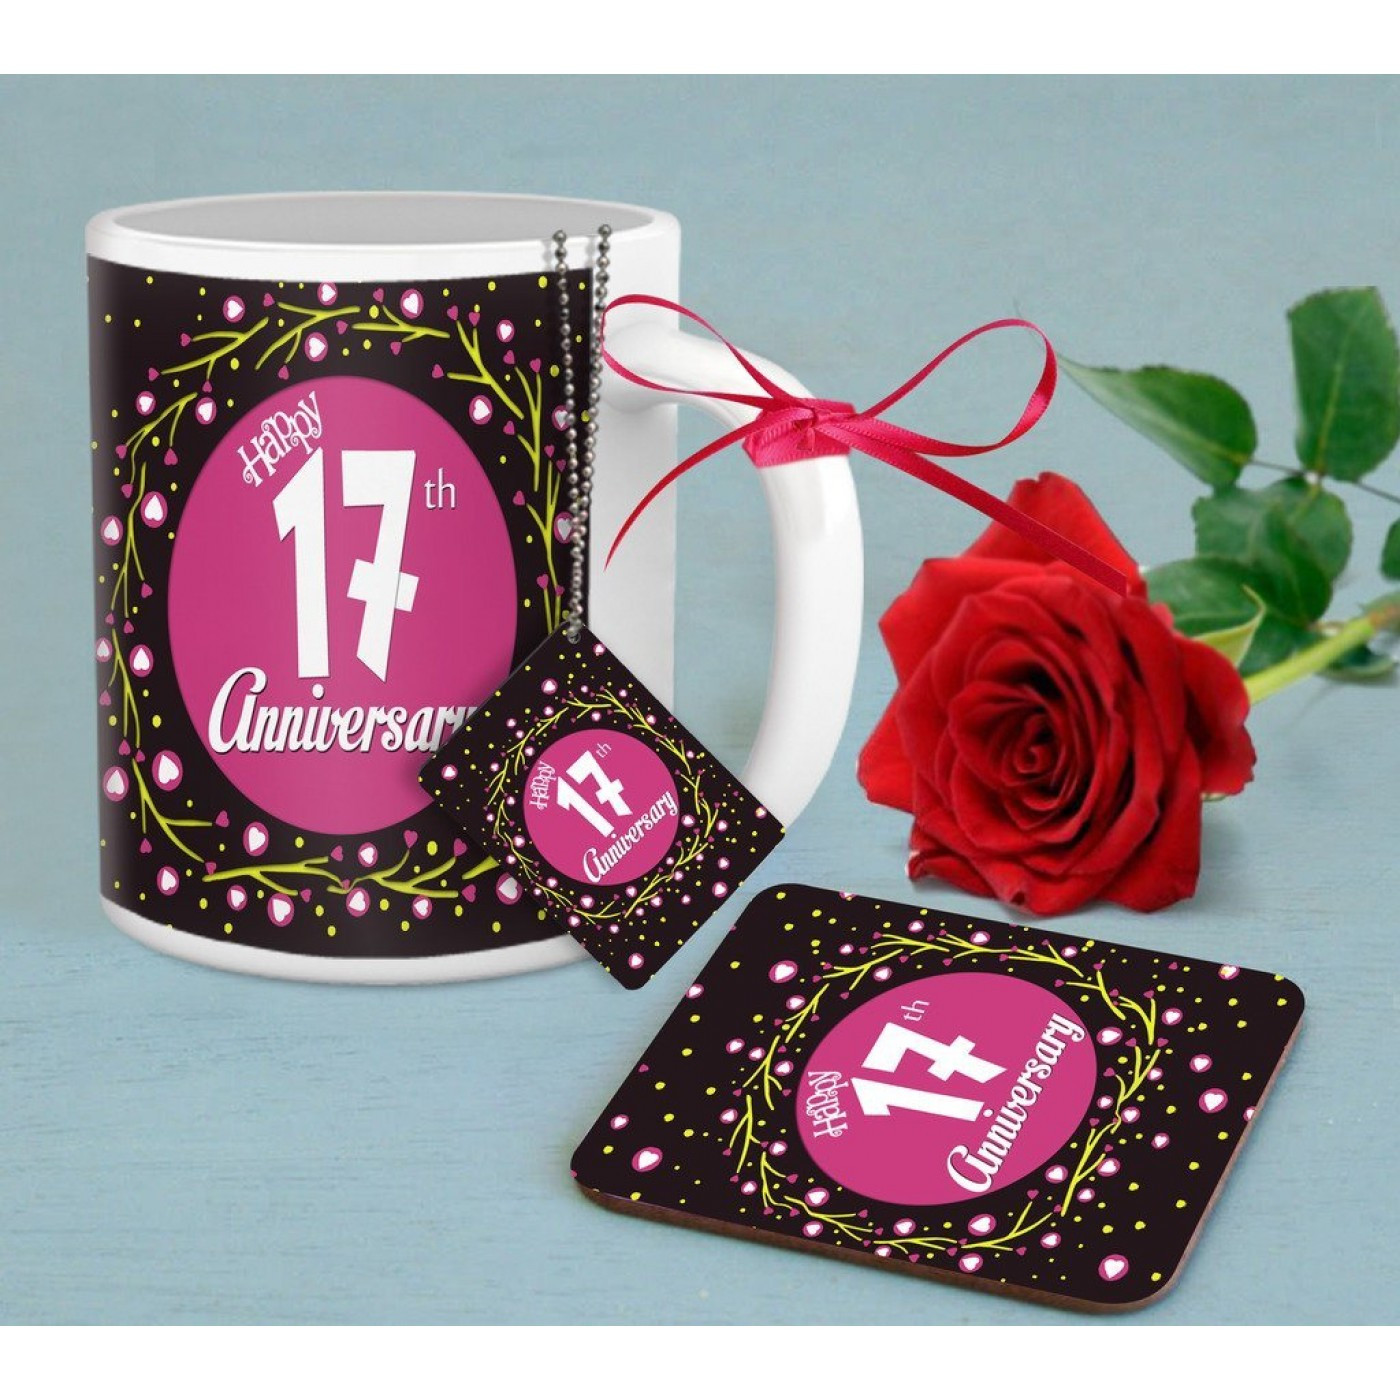 Best ideas about 17Th Anniversary Gift Ideas . Save or Pin 17th Anniversary Gift bo for Husband Anniversary Gift Now.